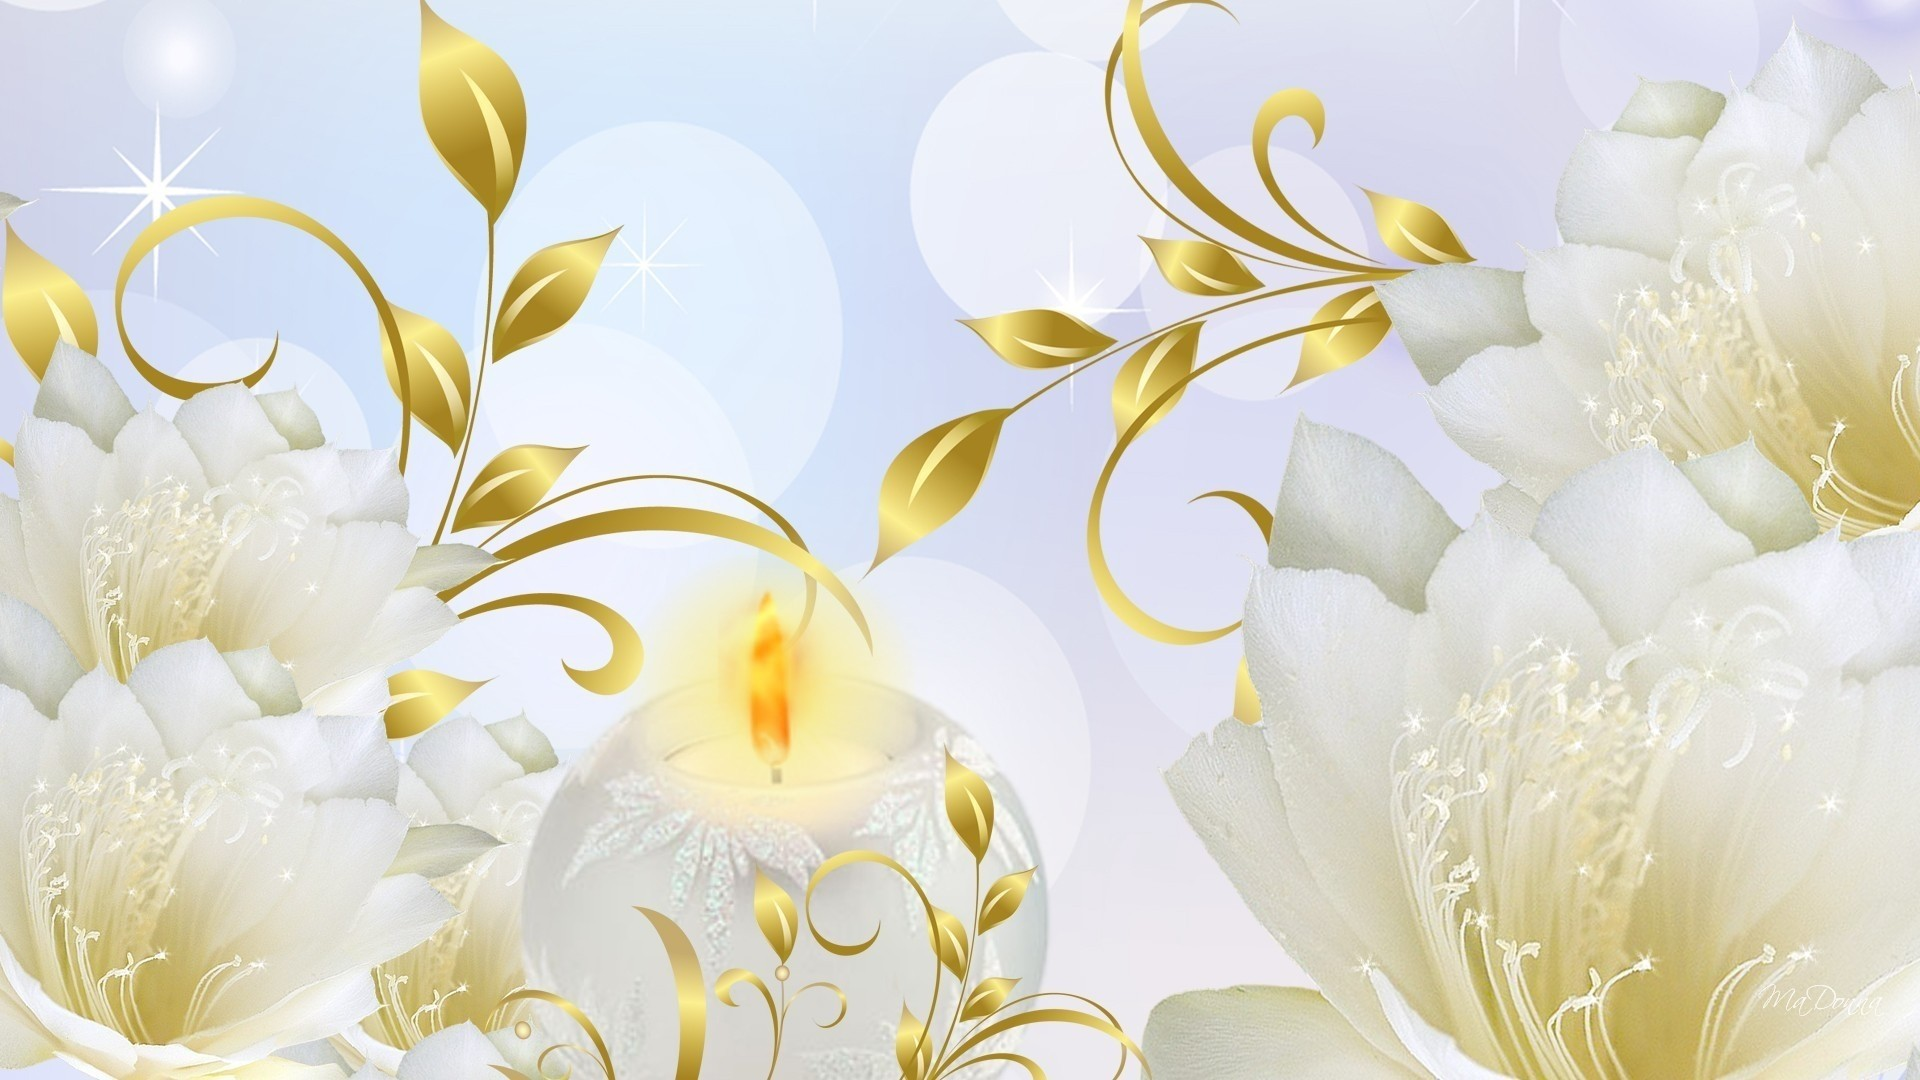 White And Gold hd wallpaper download